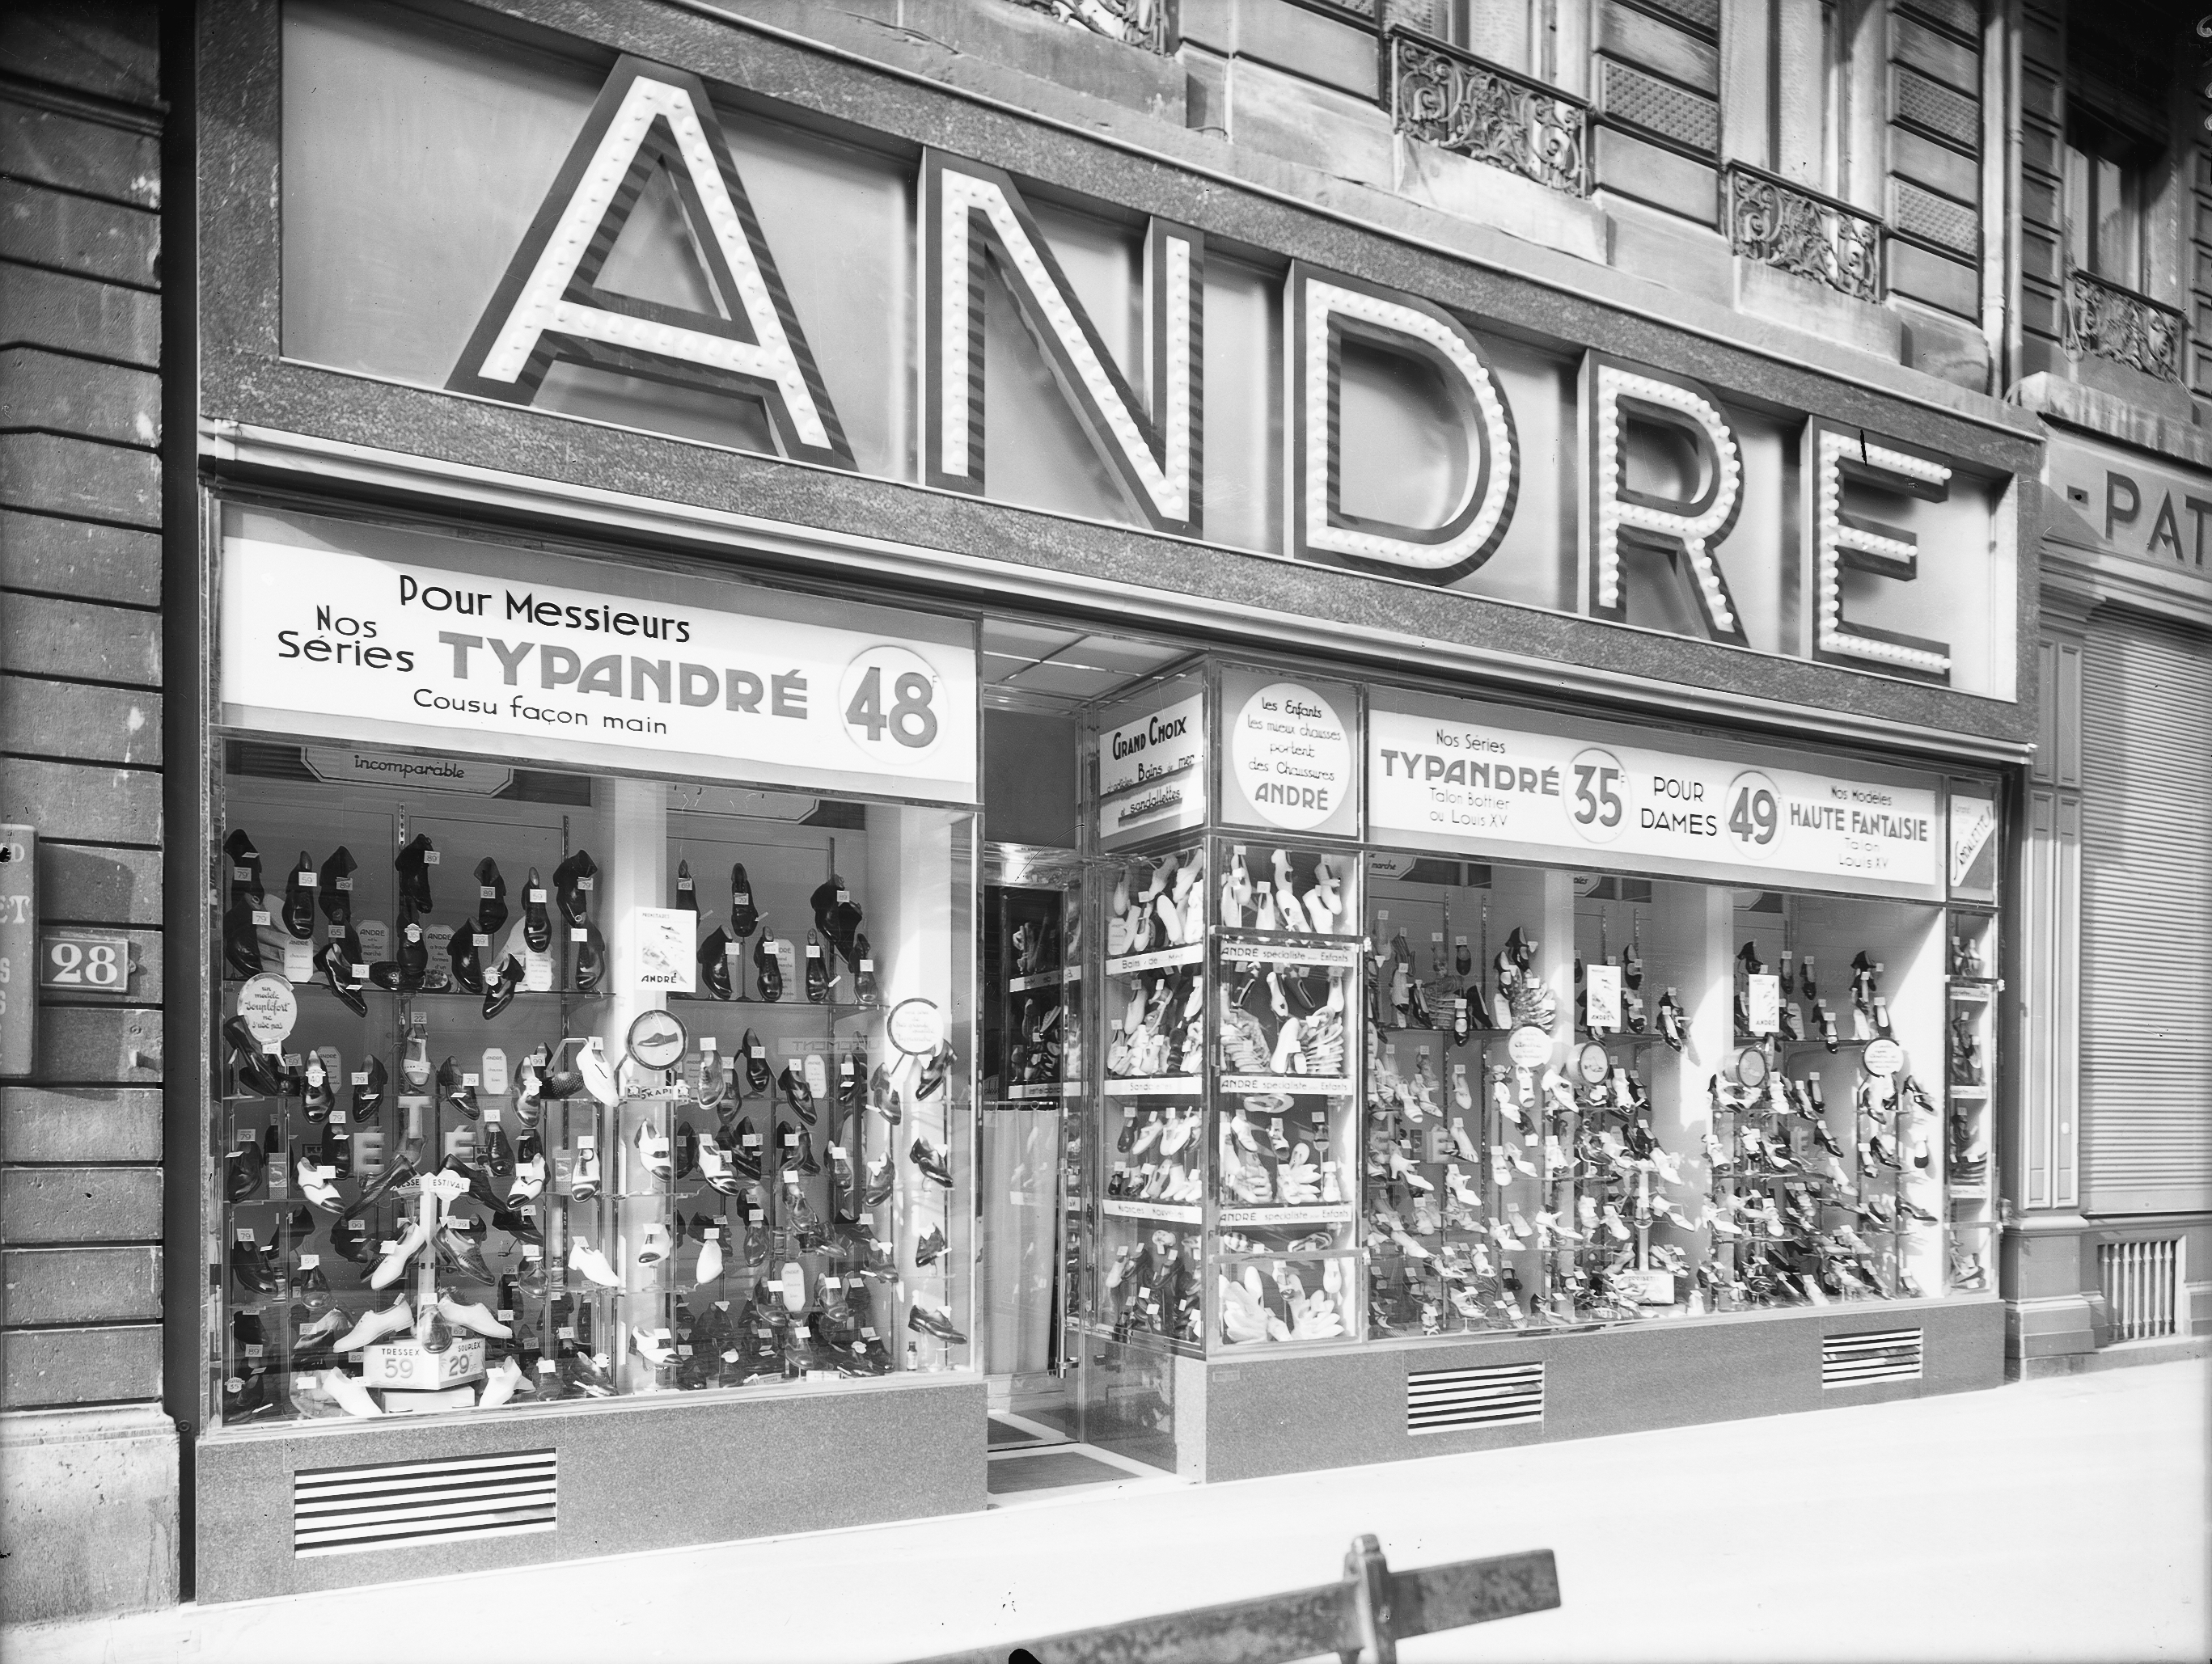 ec37405bf2899f andre chaussures,soldes chaussures andre pas cher selection a